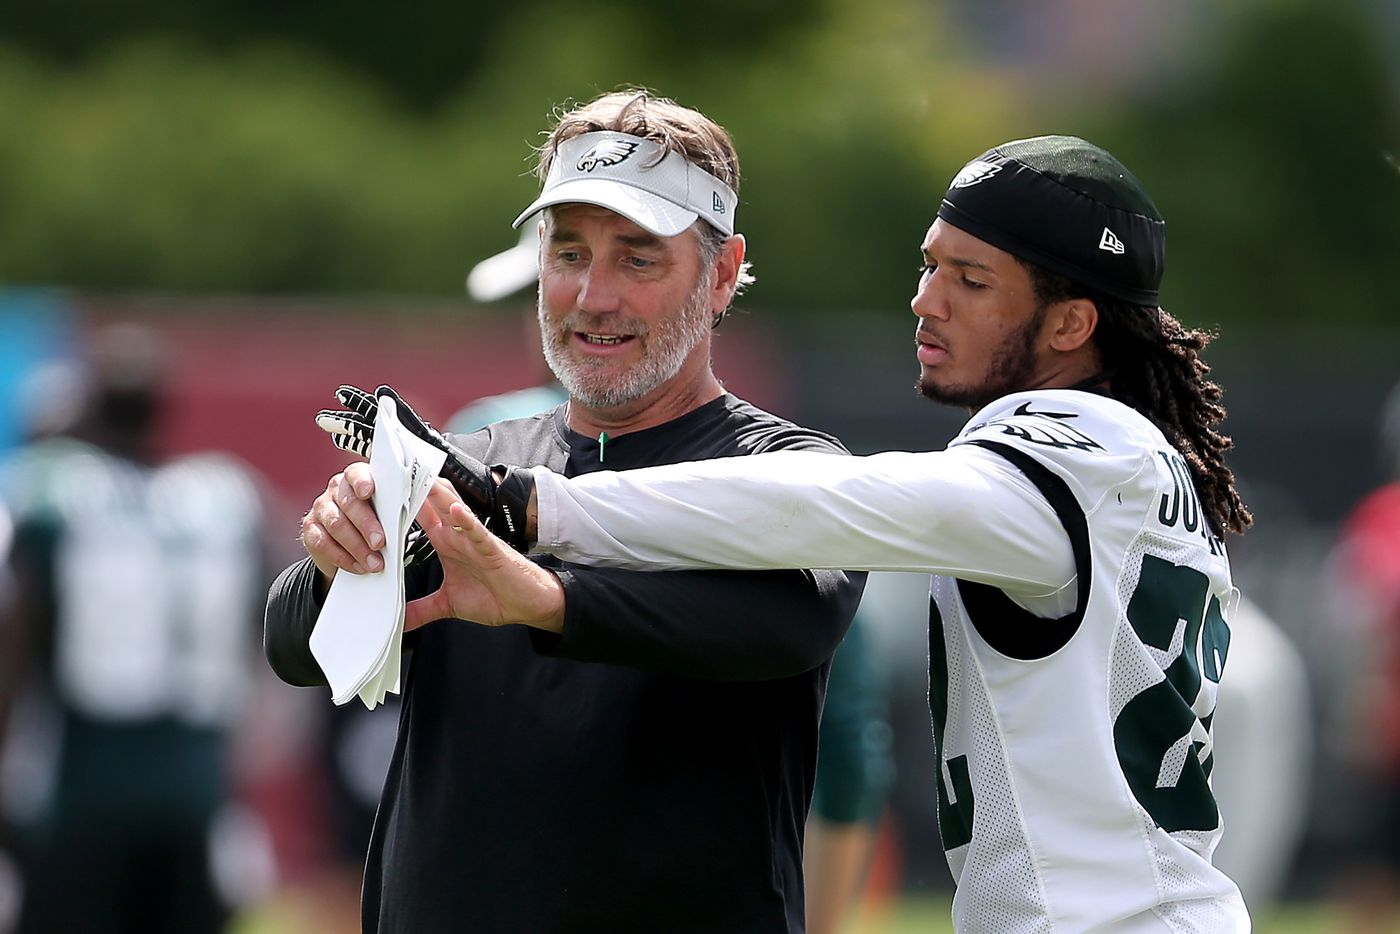 Nickel cornerback one of Eagles' few remaining roster mysteries heading into third preseason game